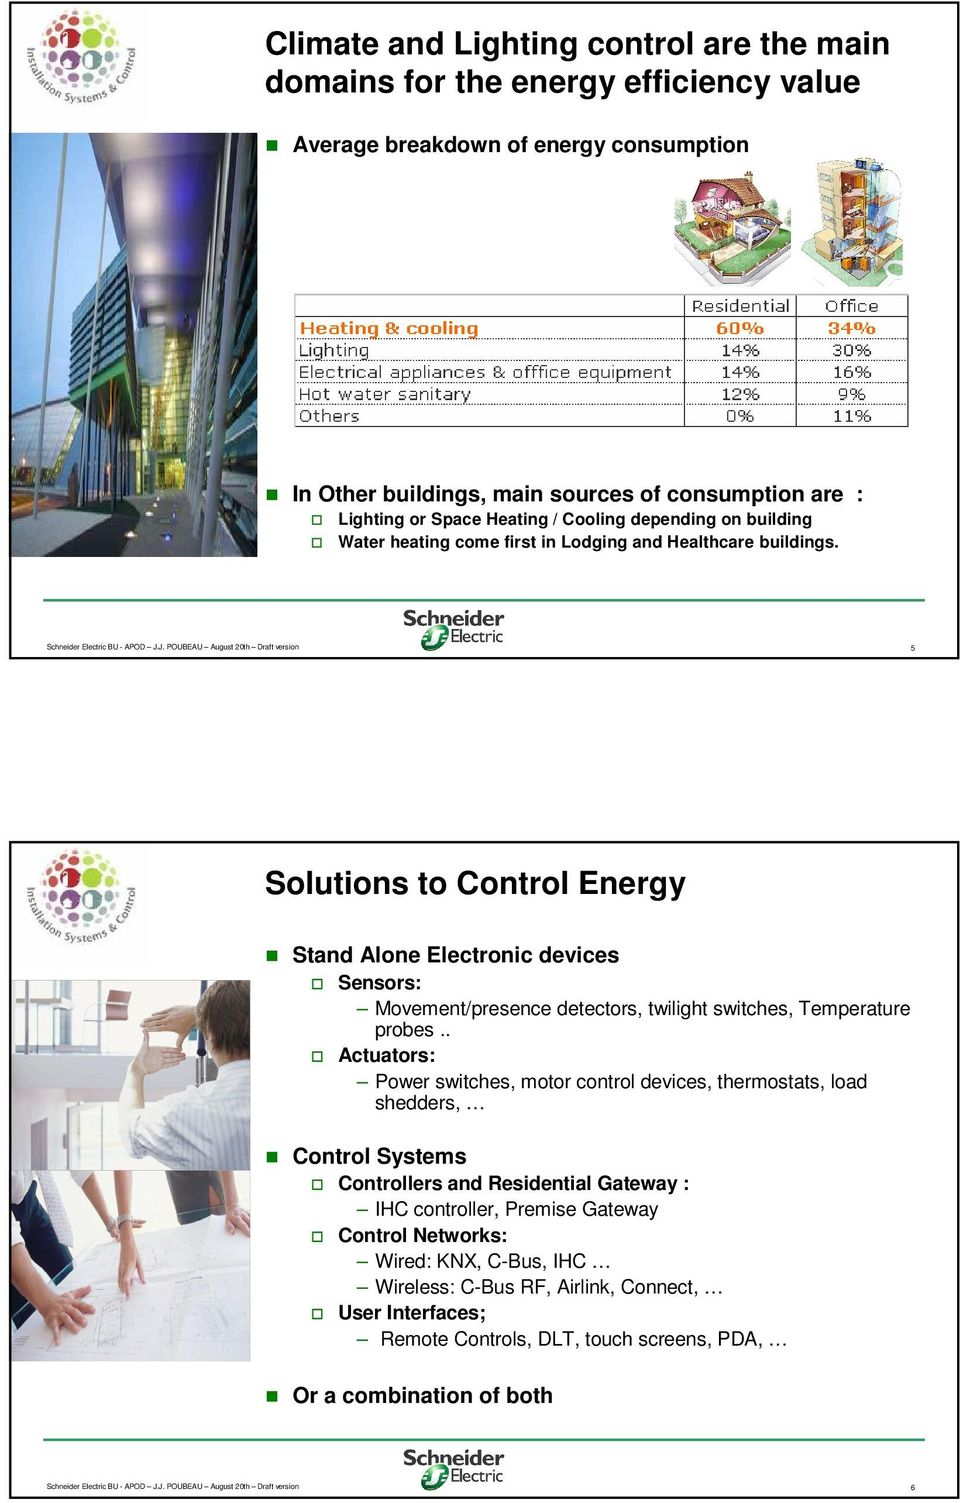 J. POUBEAU August 20th Draft version 5 Solutions to Control Energy Stand Alone Electronic devices Sensors: Movement/presence detectors, twilight switches, Temperature probes.